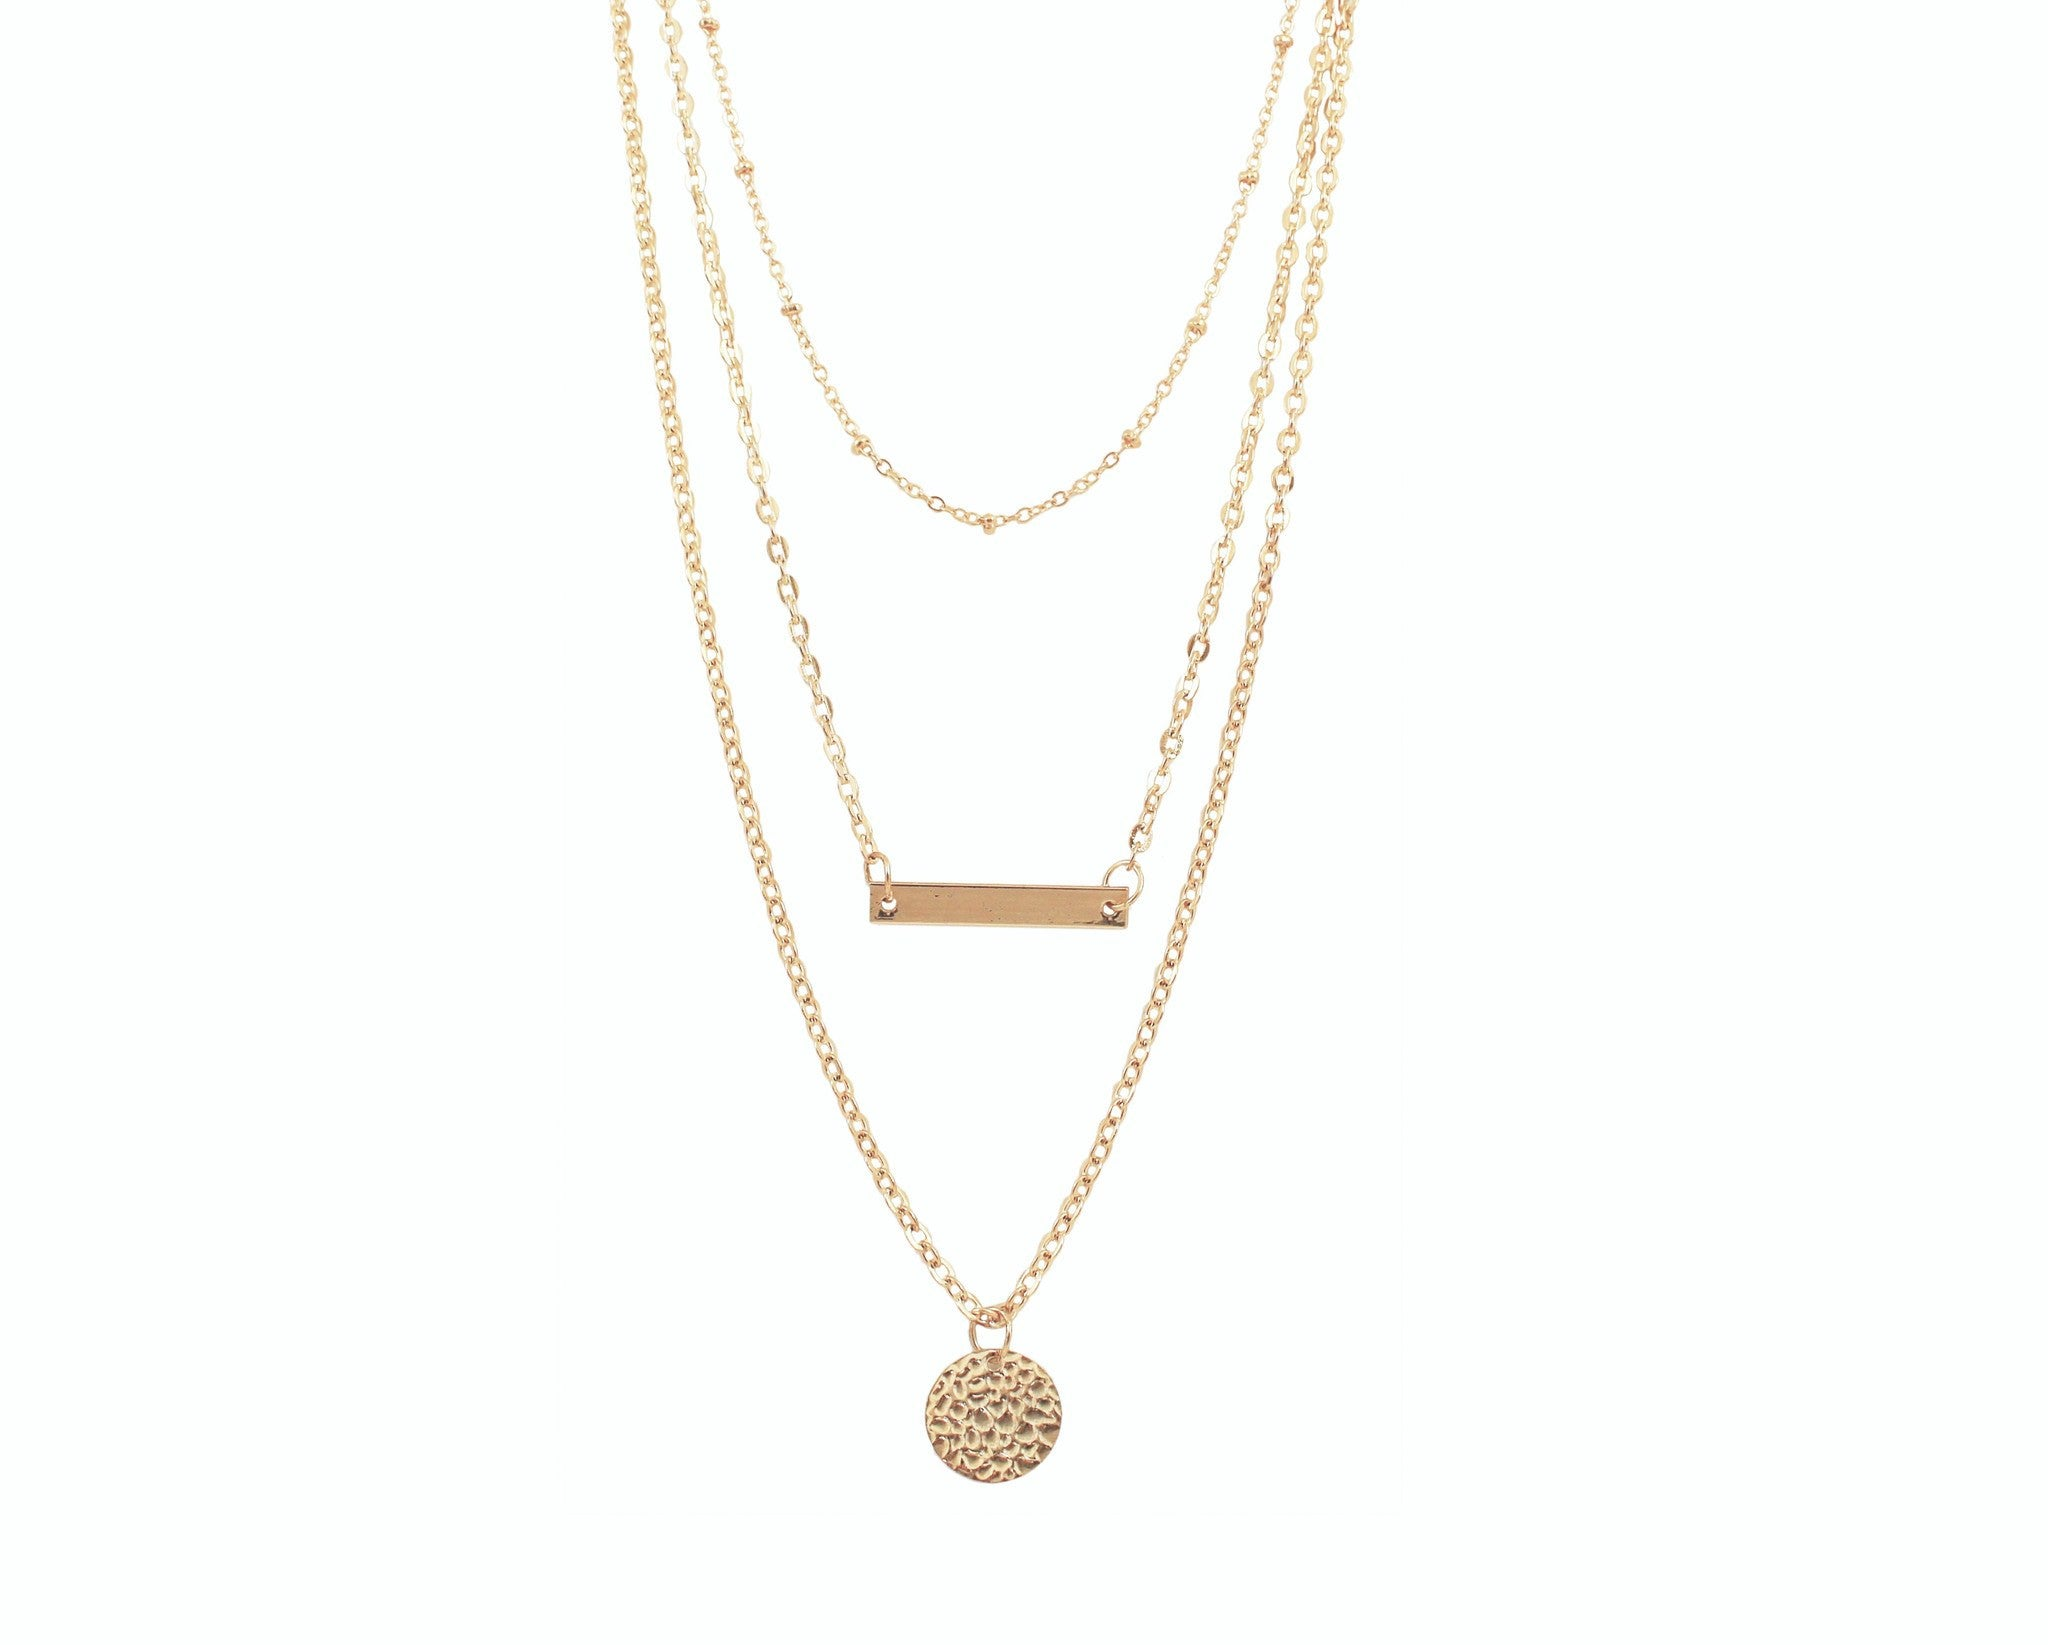 solid s necklace in gold necklaces macy fpx curb chain product shop